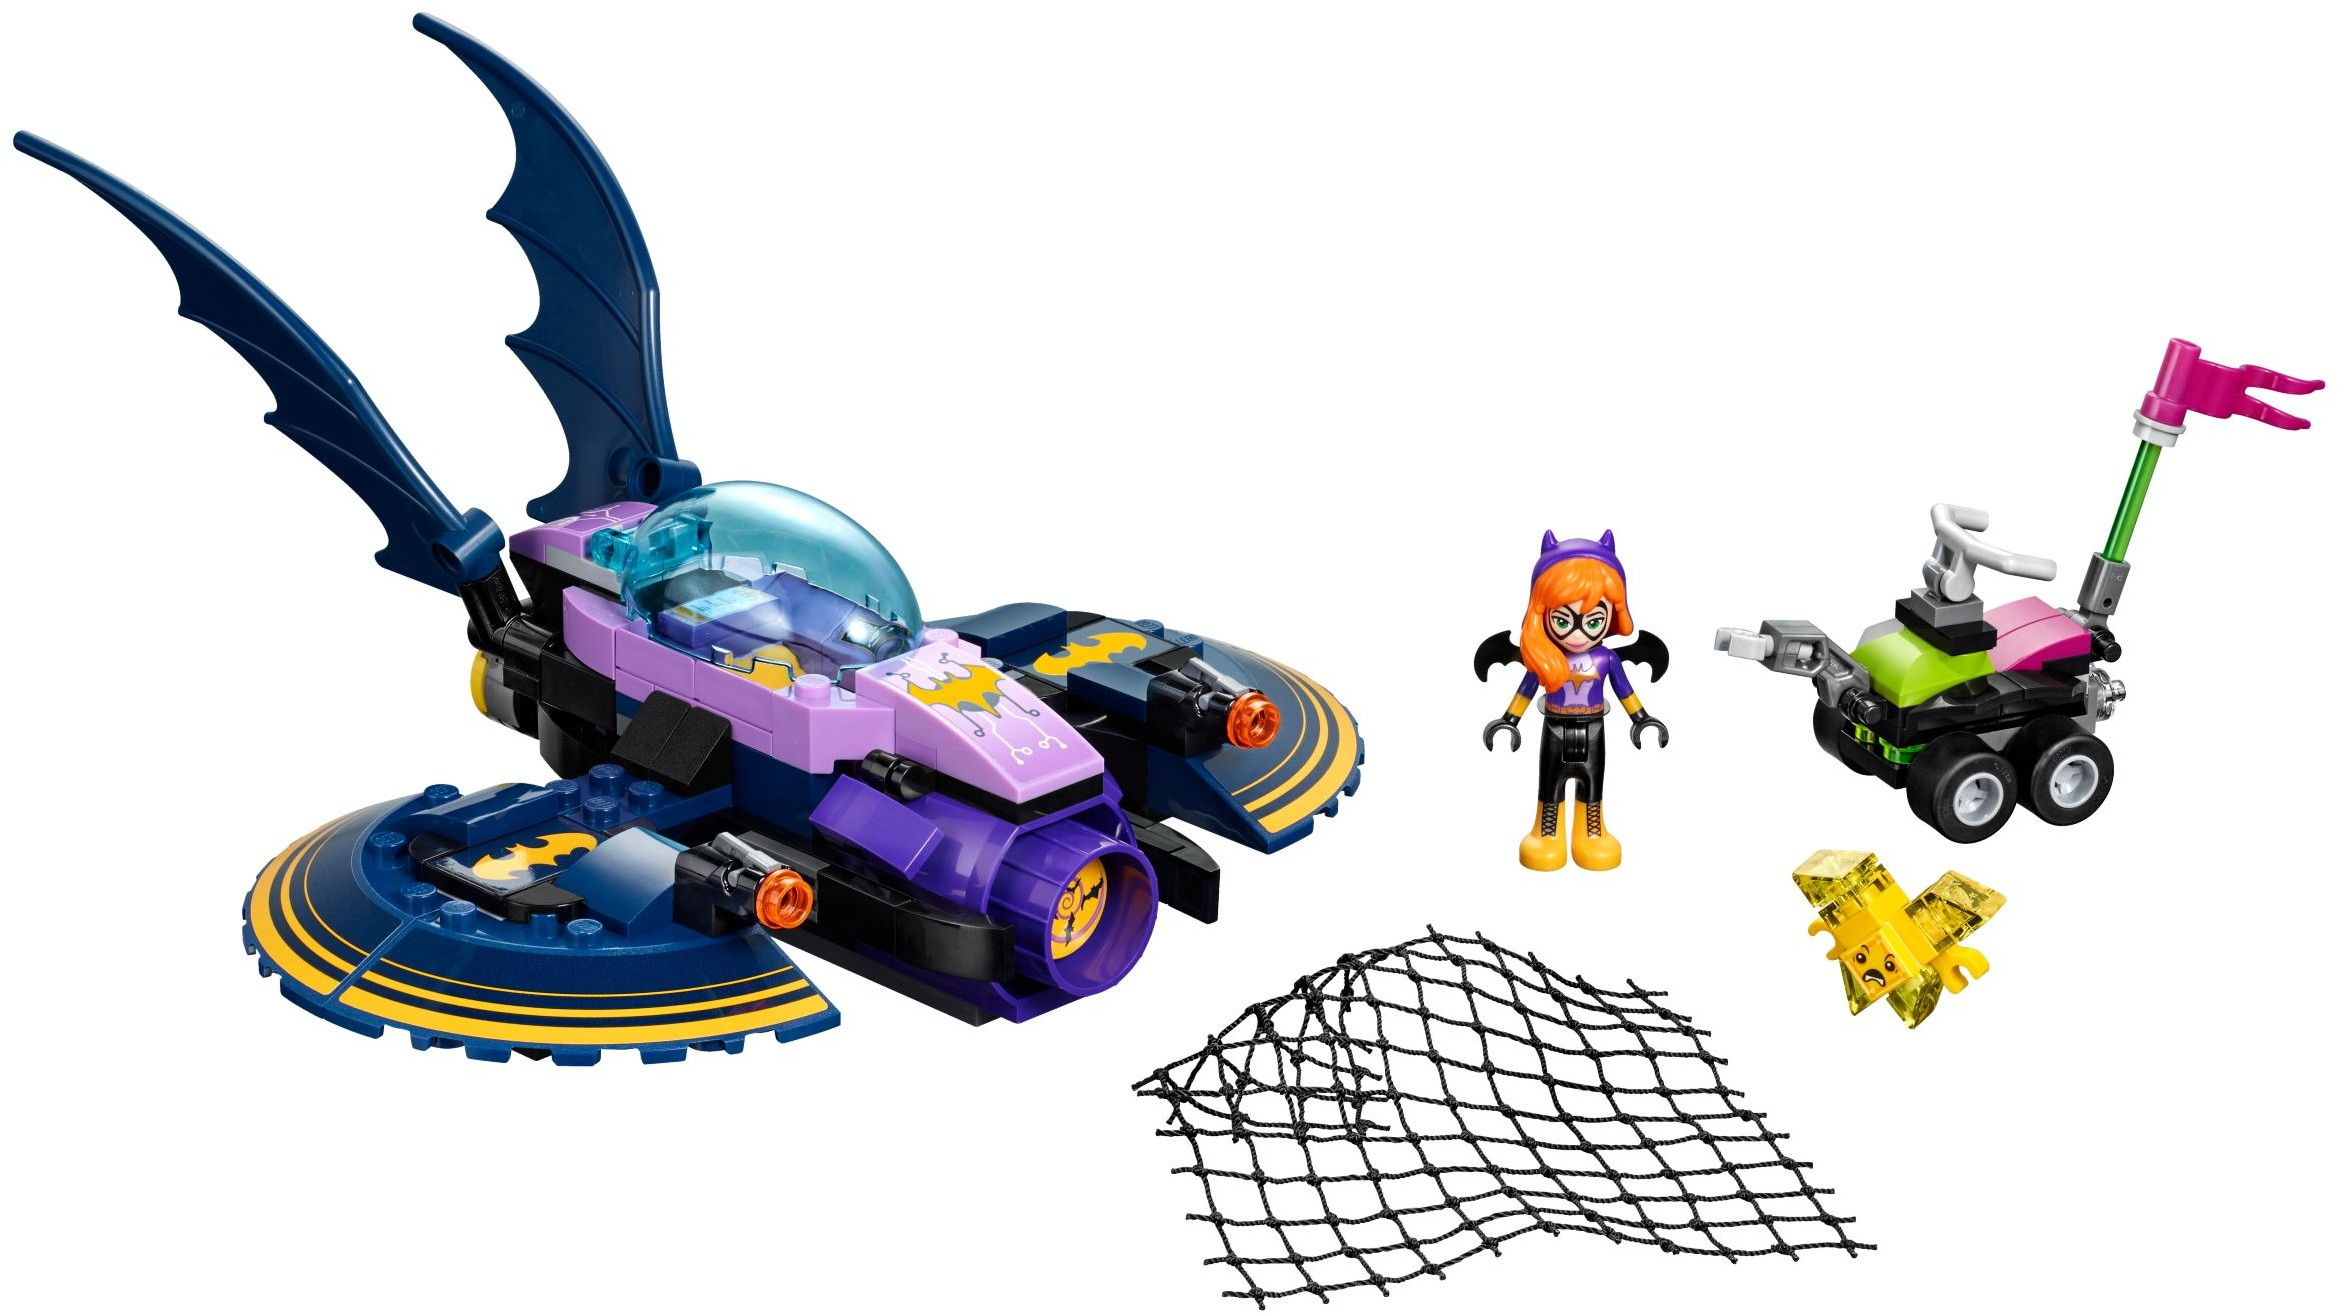 break helicopter toy with More Dc Super Hero Girls Sets Revealed on 2018 Dc Super Heroes Sets Revealed in addition 352079800859 besides Lego City 7498 Politiebureau likewise Lego Dimensions Wave 8 Expansion Packs Now Available For Pre Order additionally Predator Movie Shane Black.